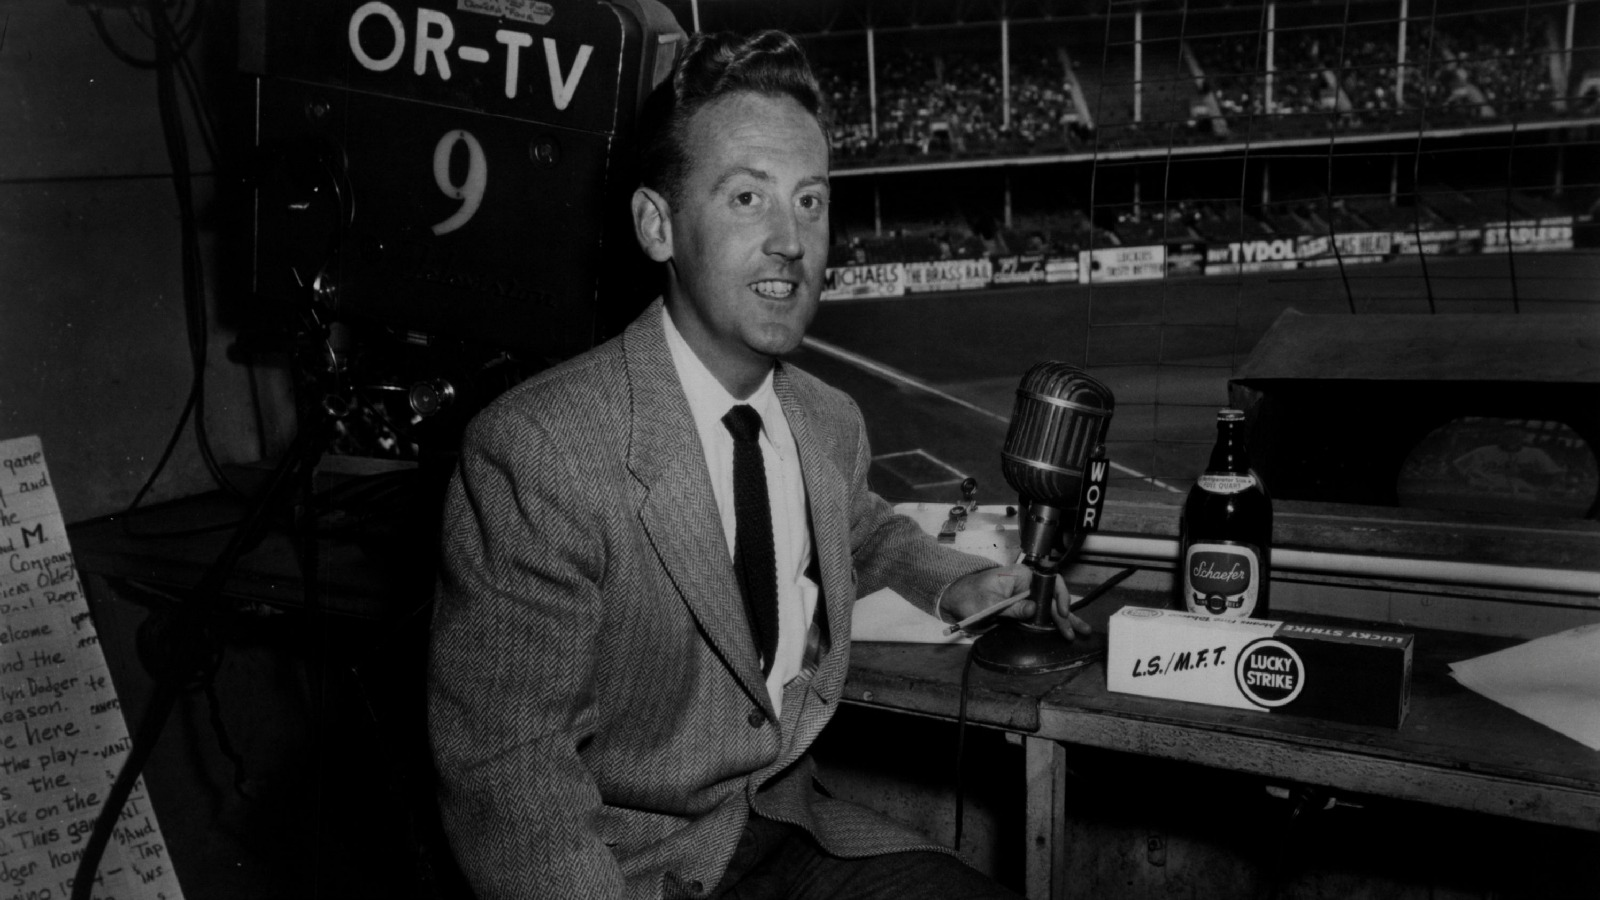 092016-MLB-Vin-Scully-historical-perspective-gallery-broadcasting-PI